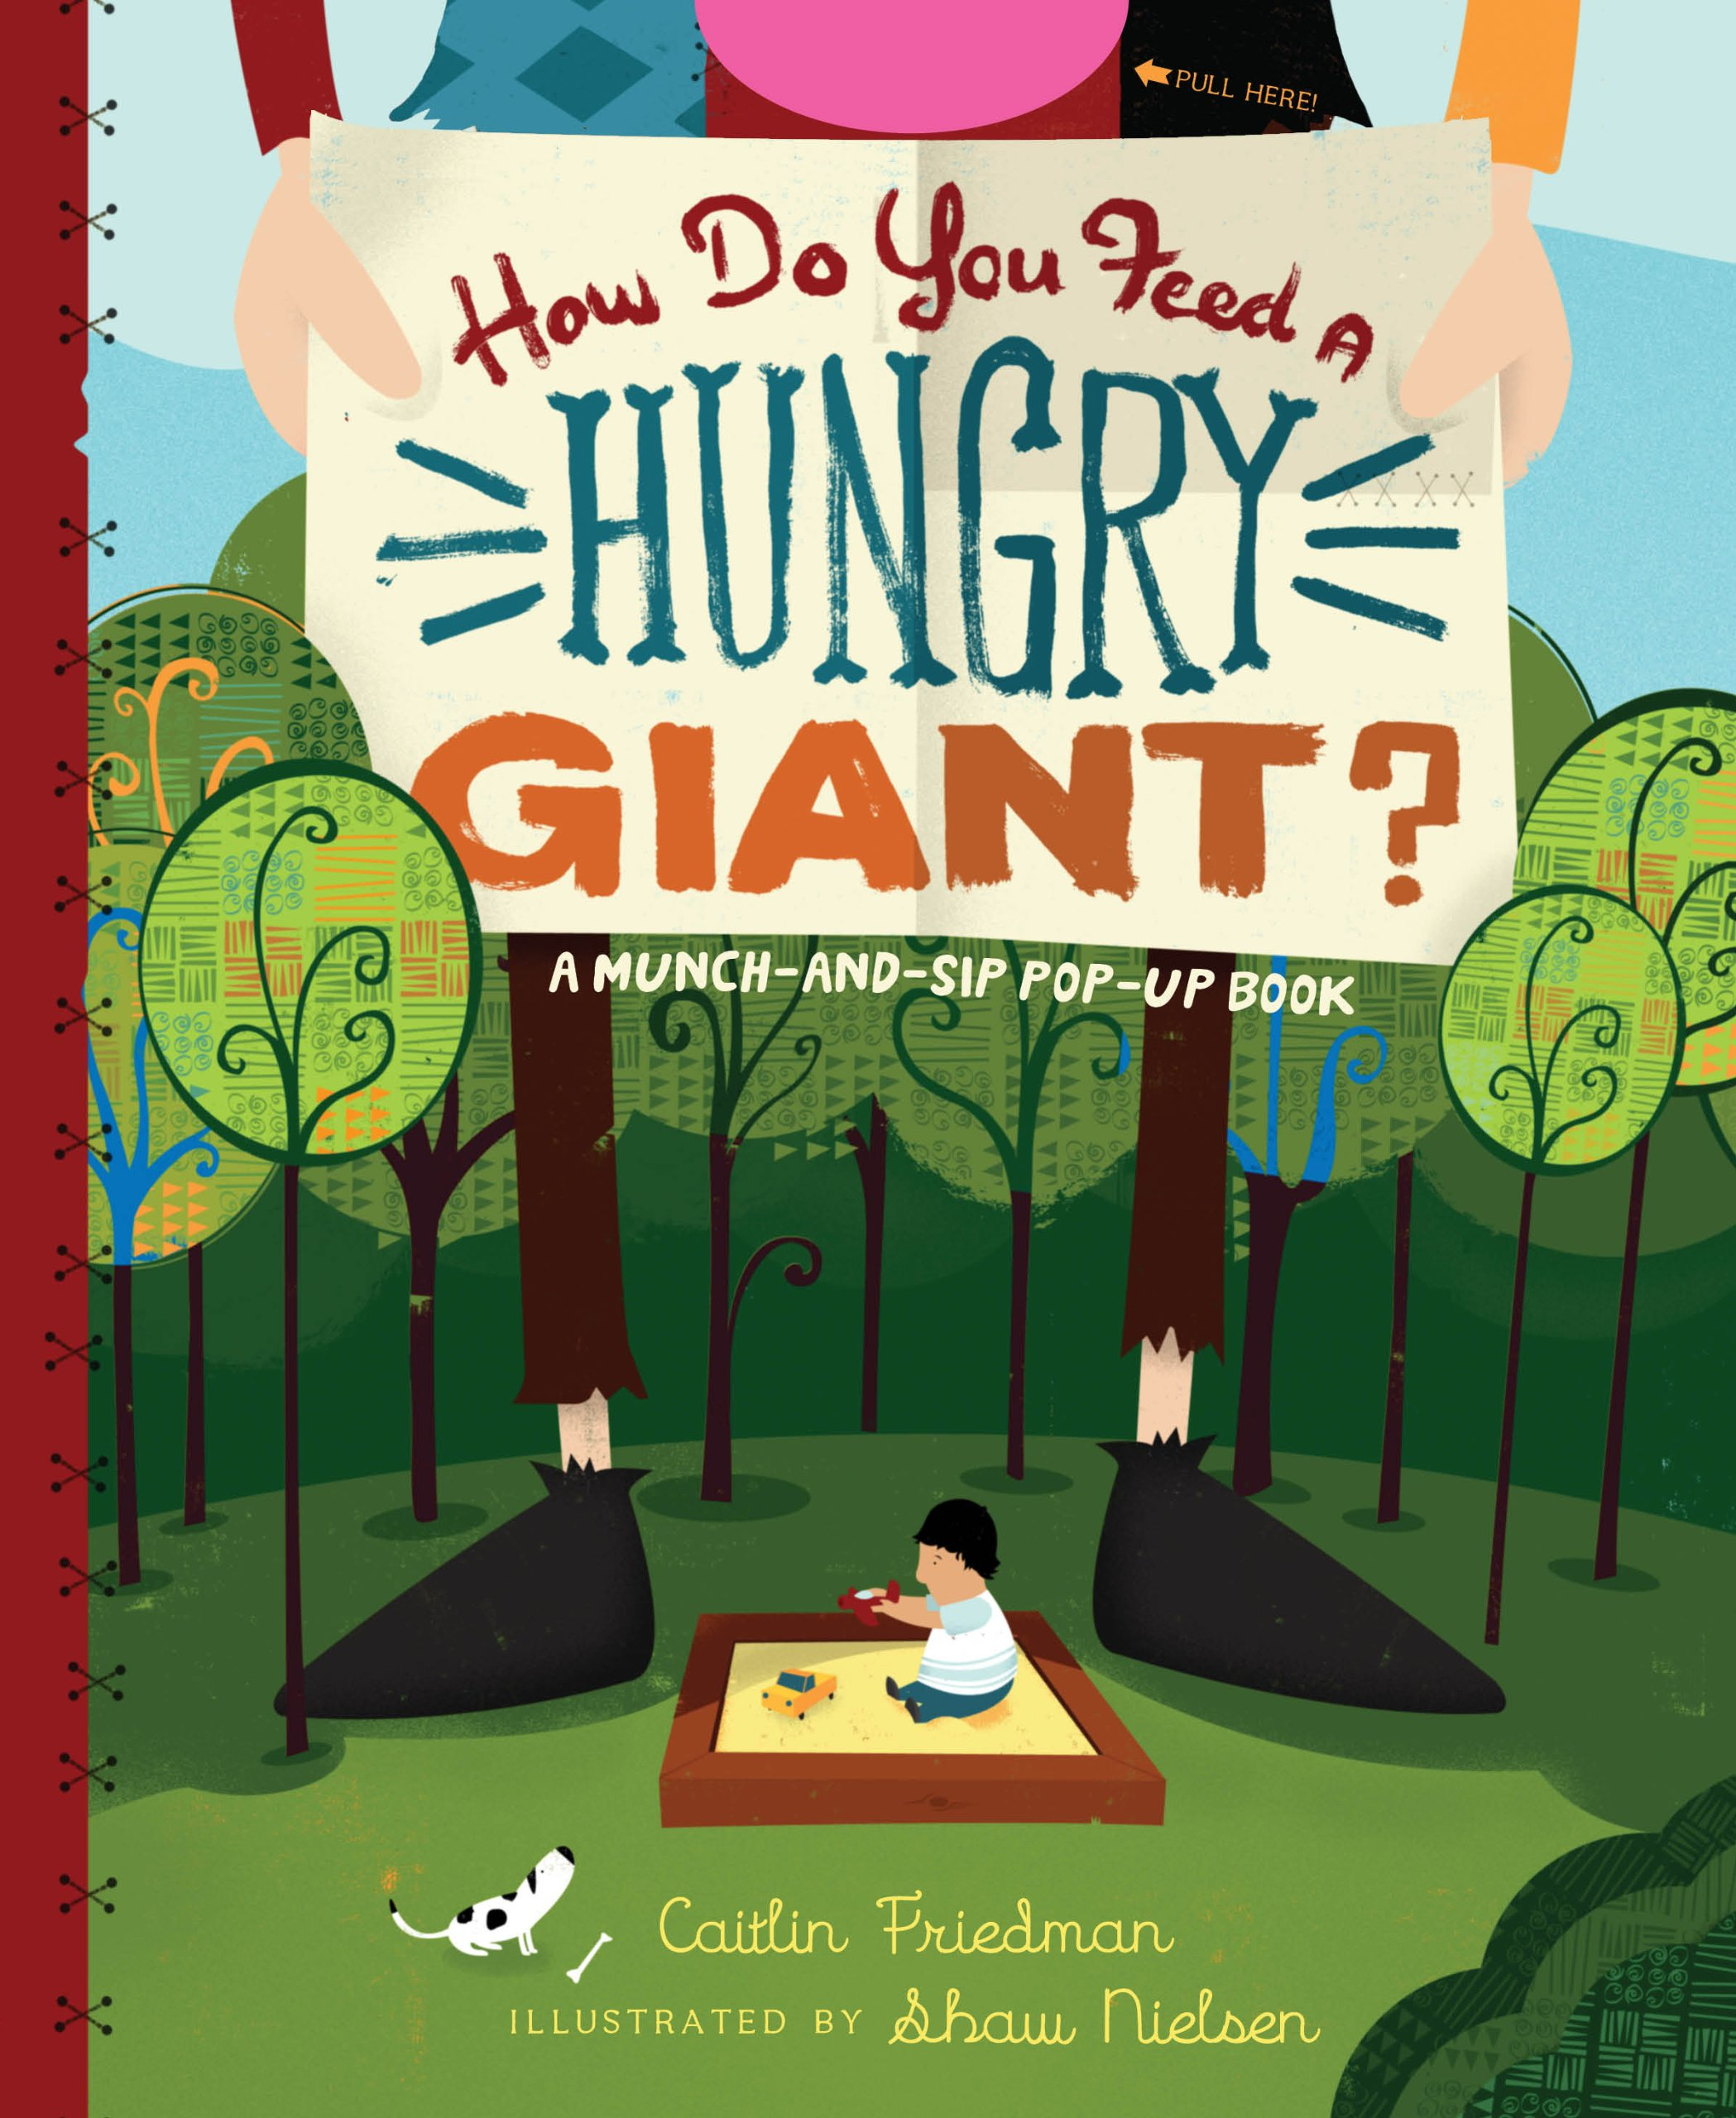 How Do You Feed a Hungry Giant?: A Munch-and-Sip Pop-Up Book (Munch-And-Sip Pop-Up Books) ebook